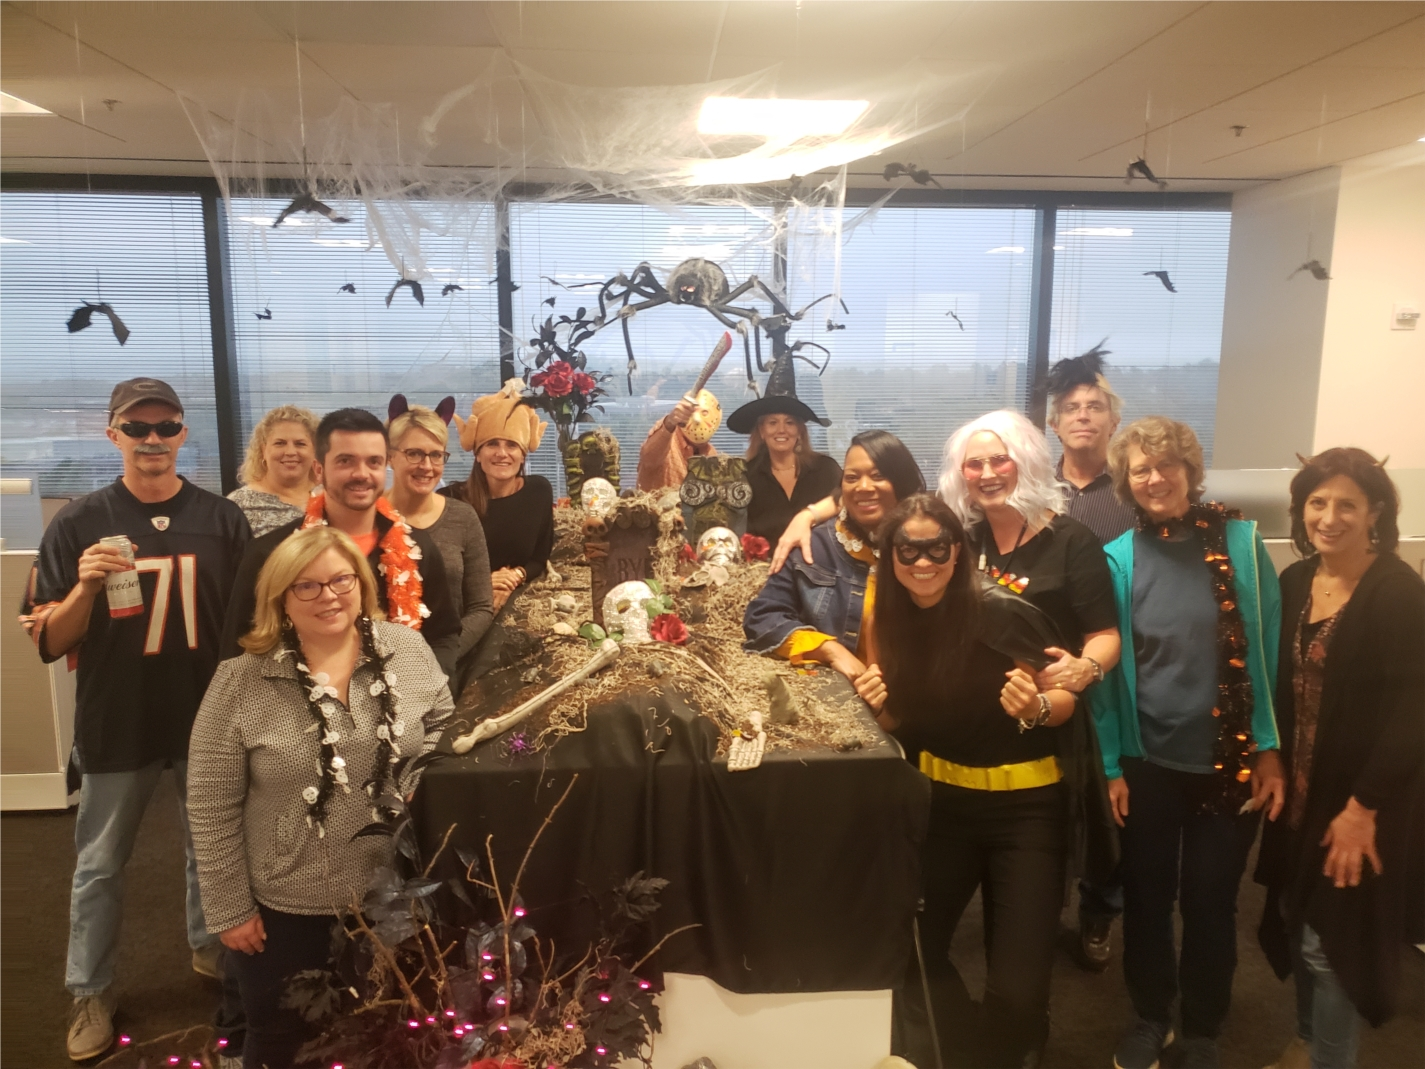 NASCO Finance and their spook-tacular holiday spirit and décor is a shining example of the creative ways ours teams collaborate with each other.